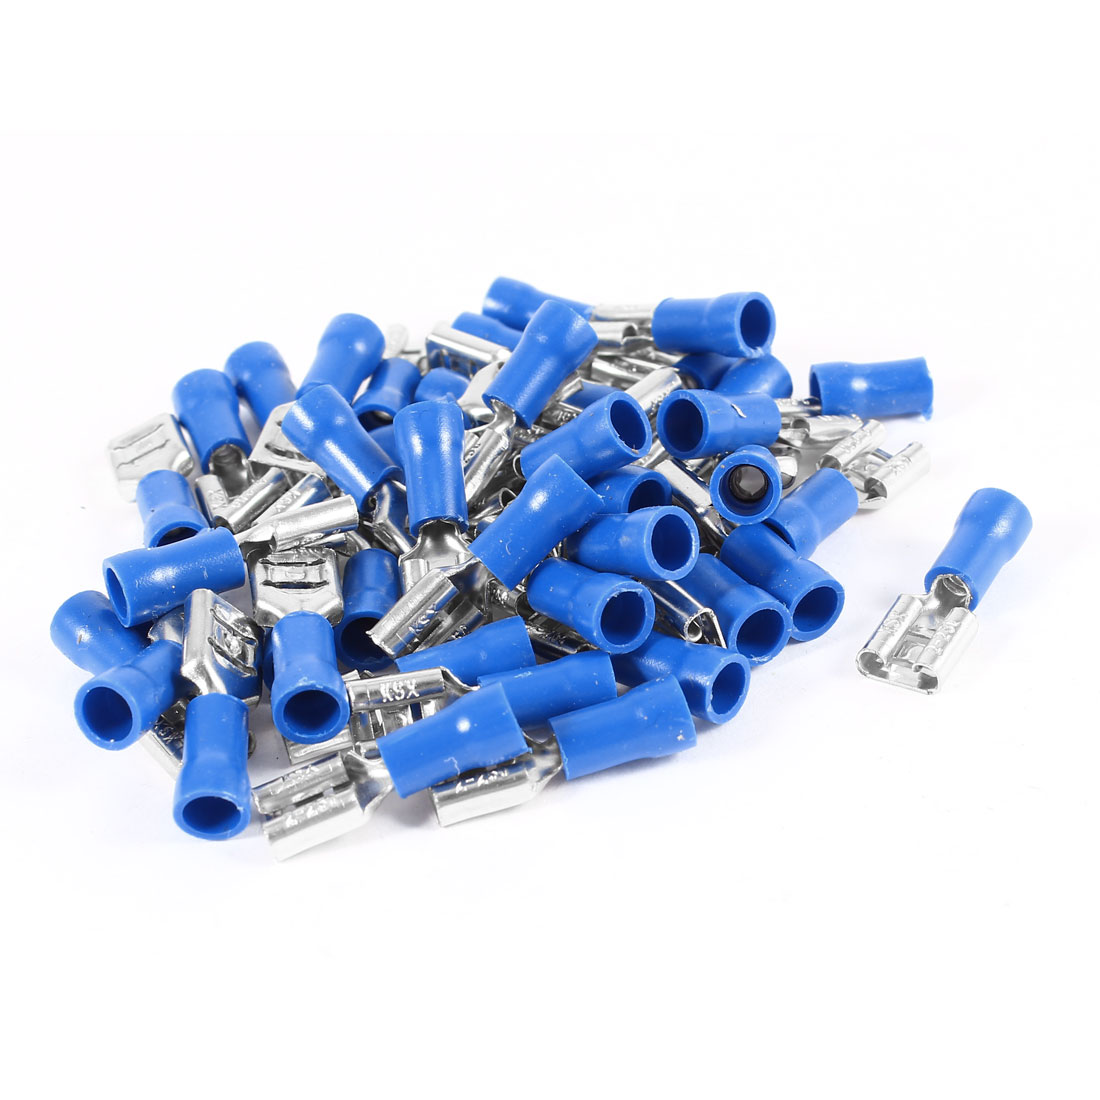 40 Pcs Blue Pre Insulated Sleeves AWG16-14 Cable Connect Spade Receptacle Crimp Terminals FDD 2-250